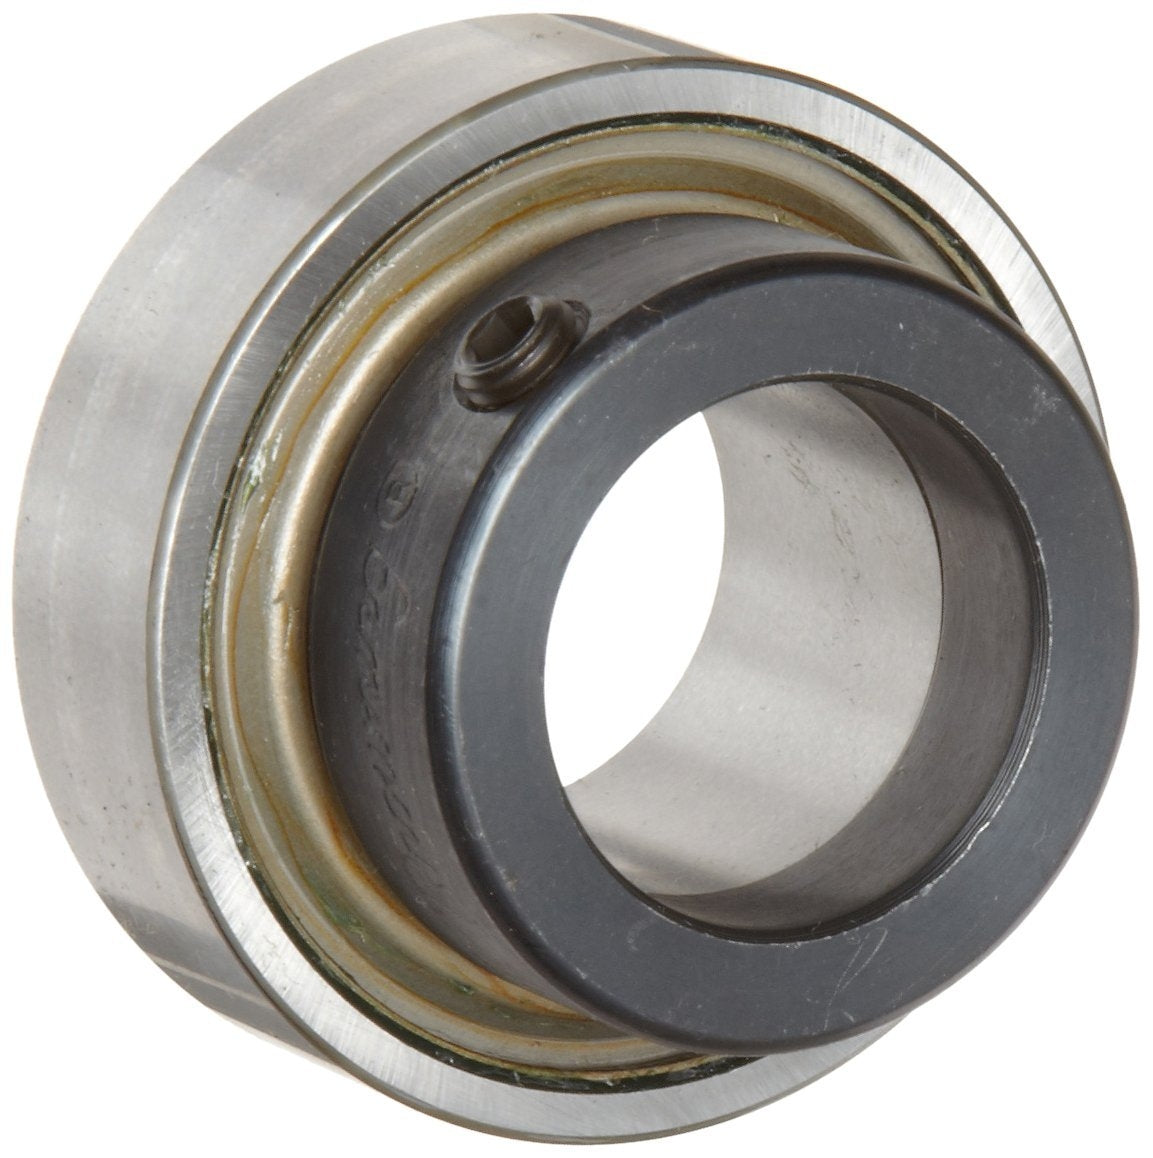 "Browning SLE-120 Wide Inner Ring Bearing, Eccentric Collar, Double Sealed, Normal Clearance, Steel Cage, 1-1/4"" Bore, 72 mm OD , 1-37/64"" Width"